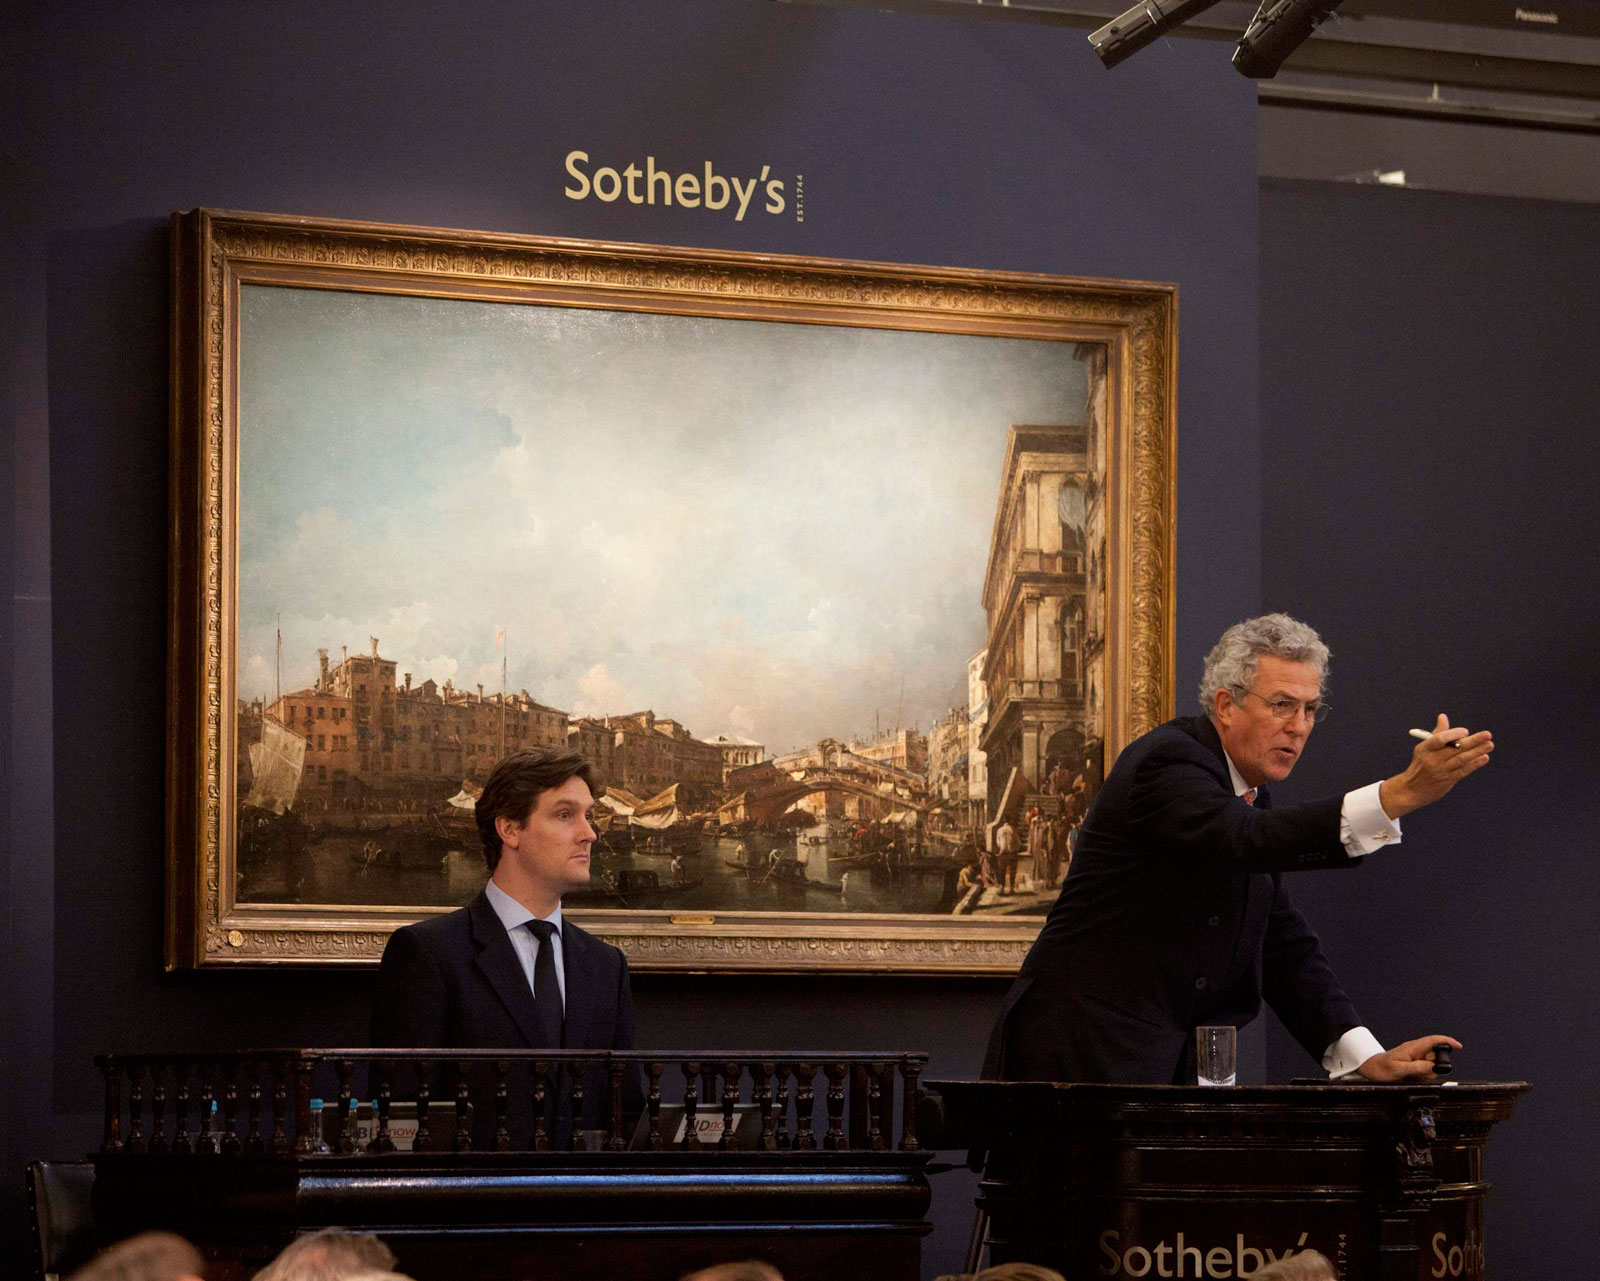 Sothebys Set an Auction Record for Venetian View Painting